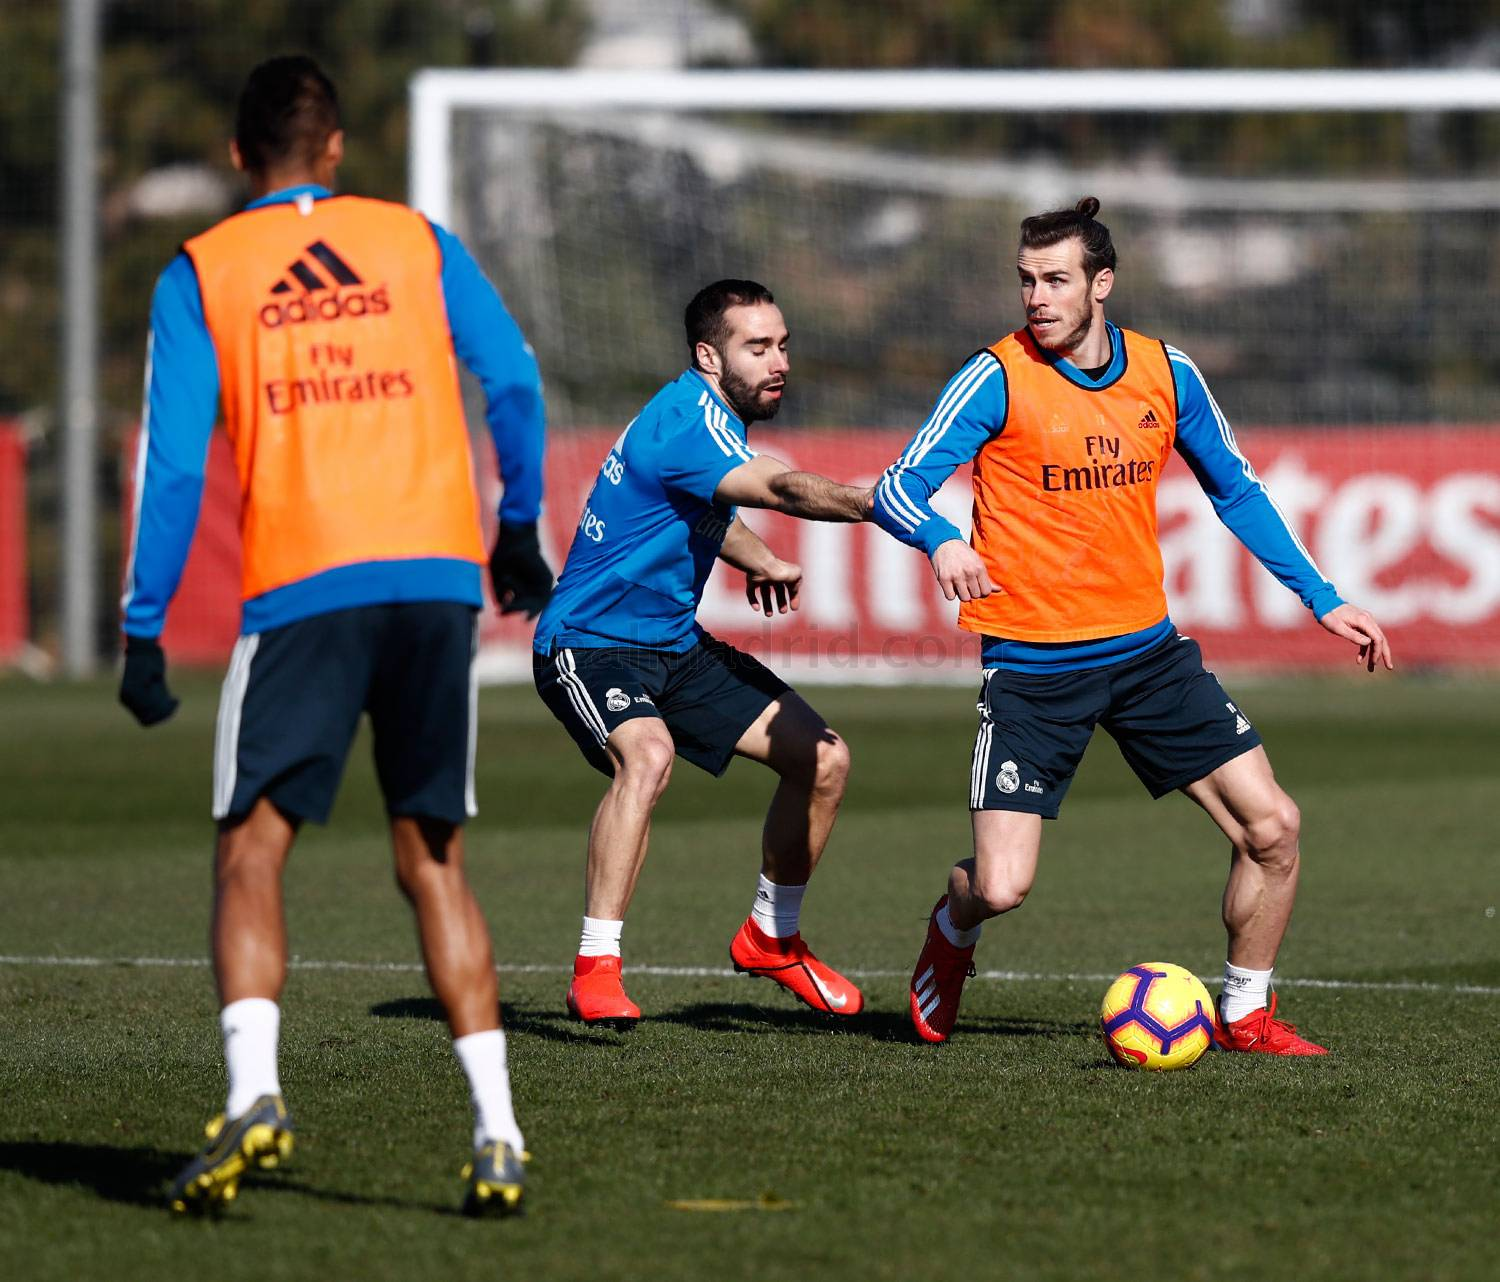 Real Madrid - Entrenamiento del Real Madrid - 08-02-2019